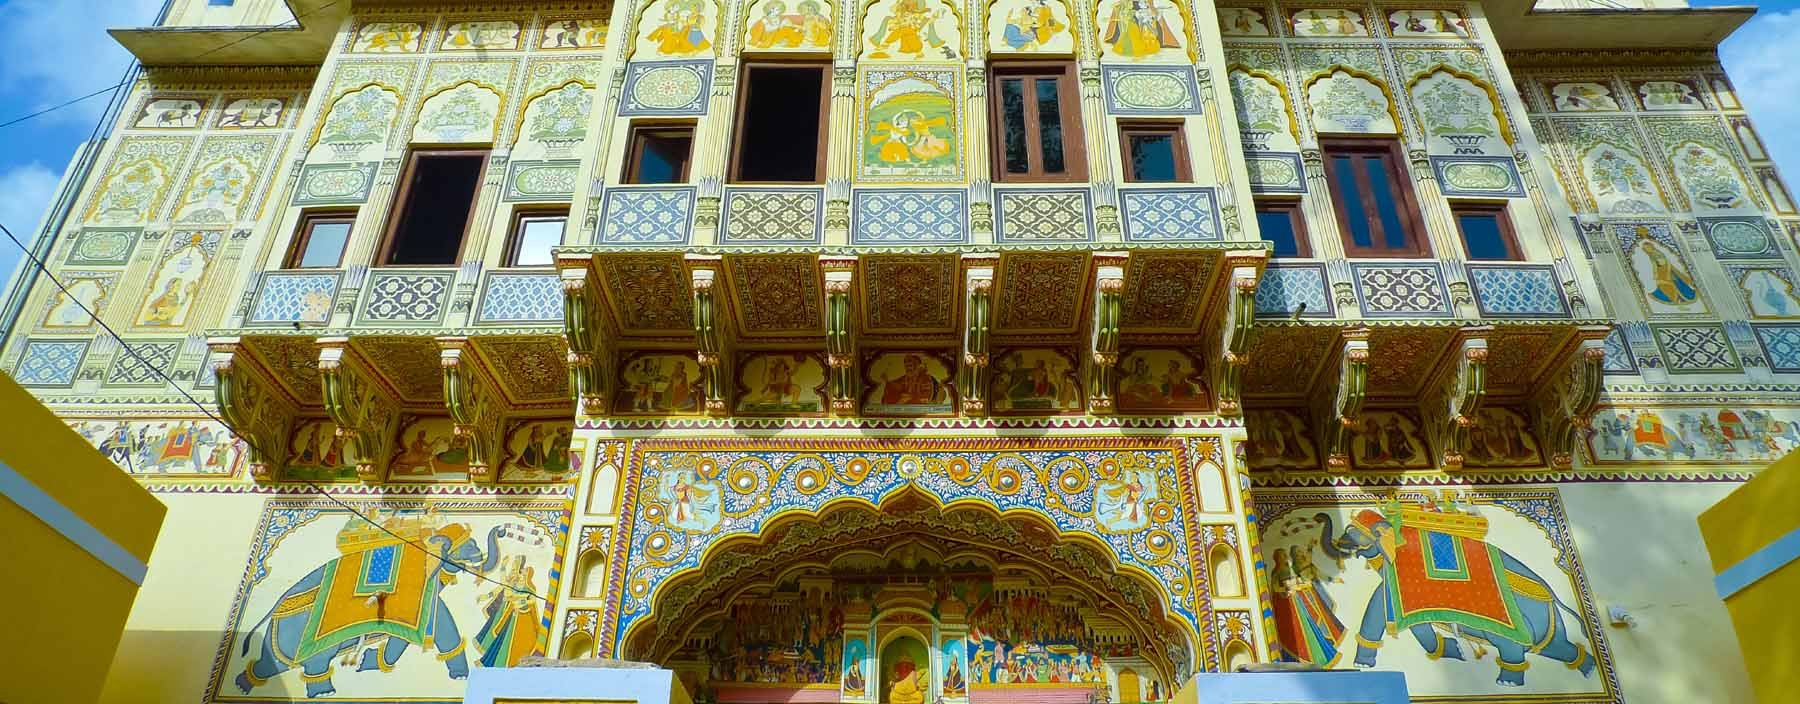 in, mandawa, painted haveli.jpg